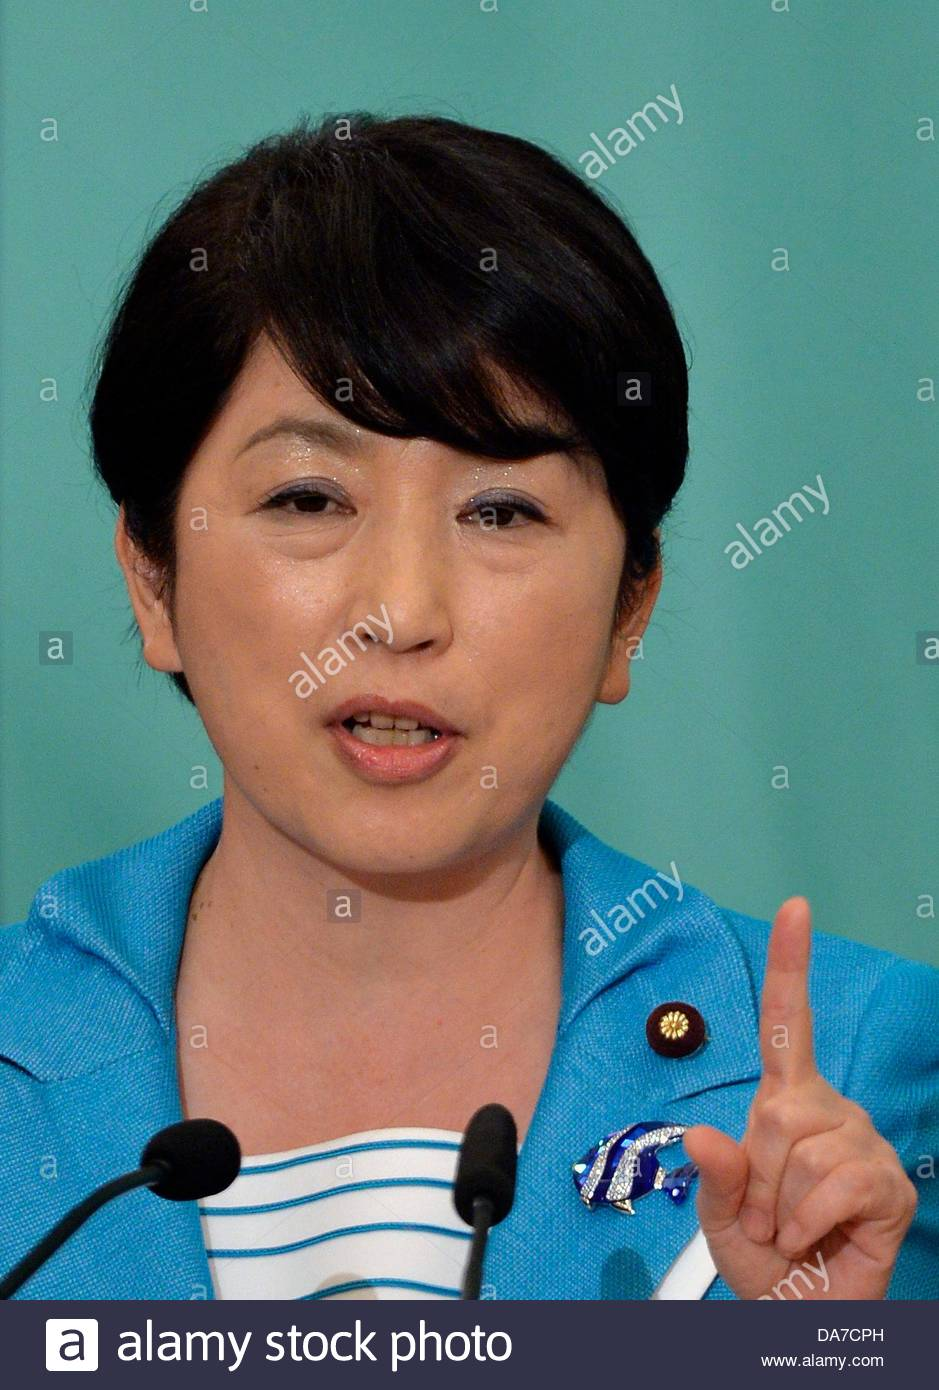 Stock Photo - epa03772503 Social Democratic Party leader Mizuho Fukushima points as she speaks during a debate at Japan National Press Club in Tokyo, Japan, ... - epa03772503-social-democratic-party-leader-mizuho-fukushima-points-DA7CPH